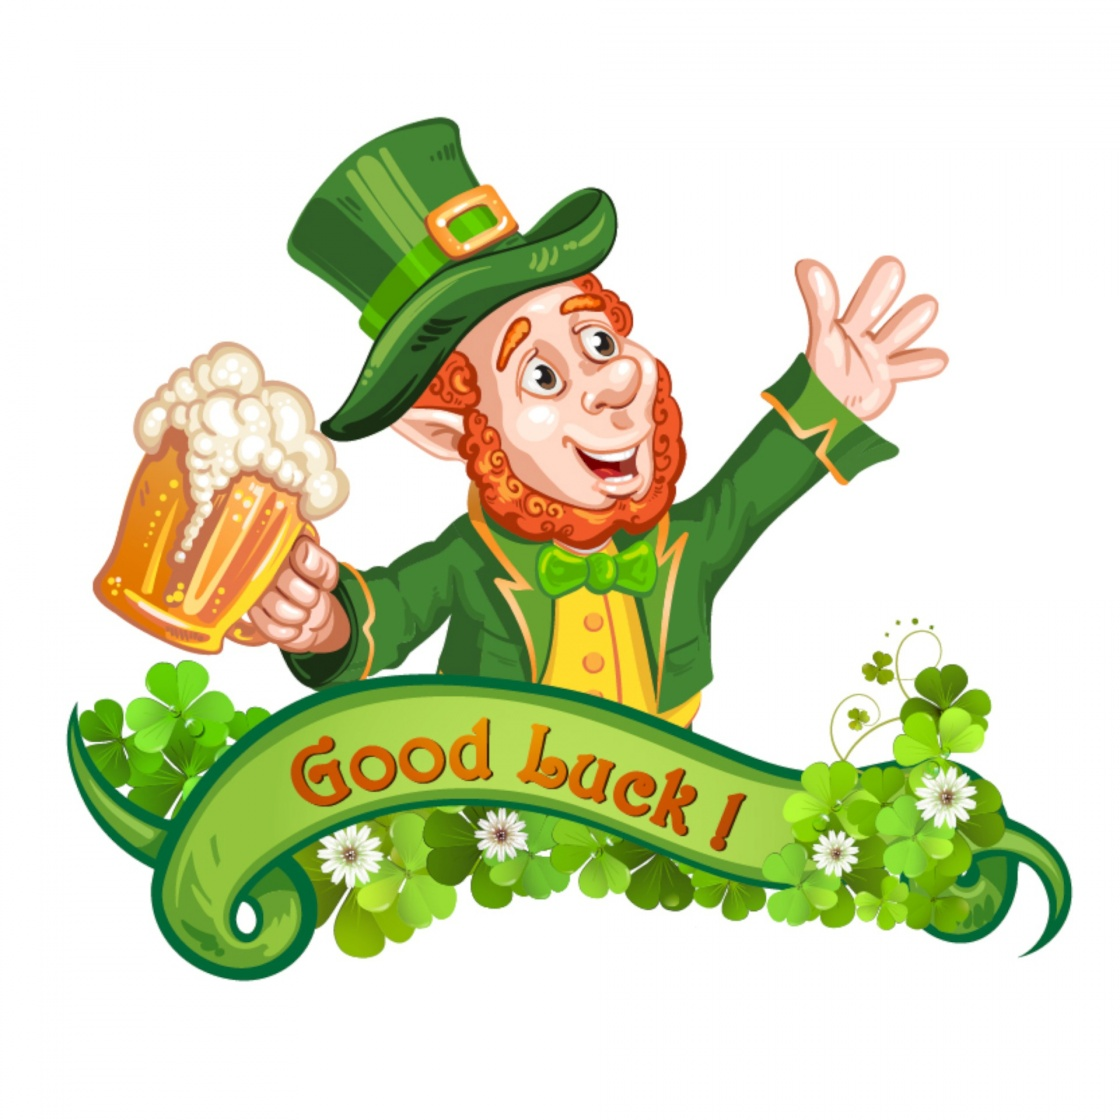 1120x1120 Ireland Clipart Leprechaun Beer Free Collection Download